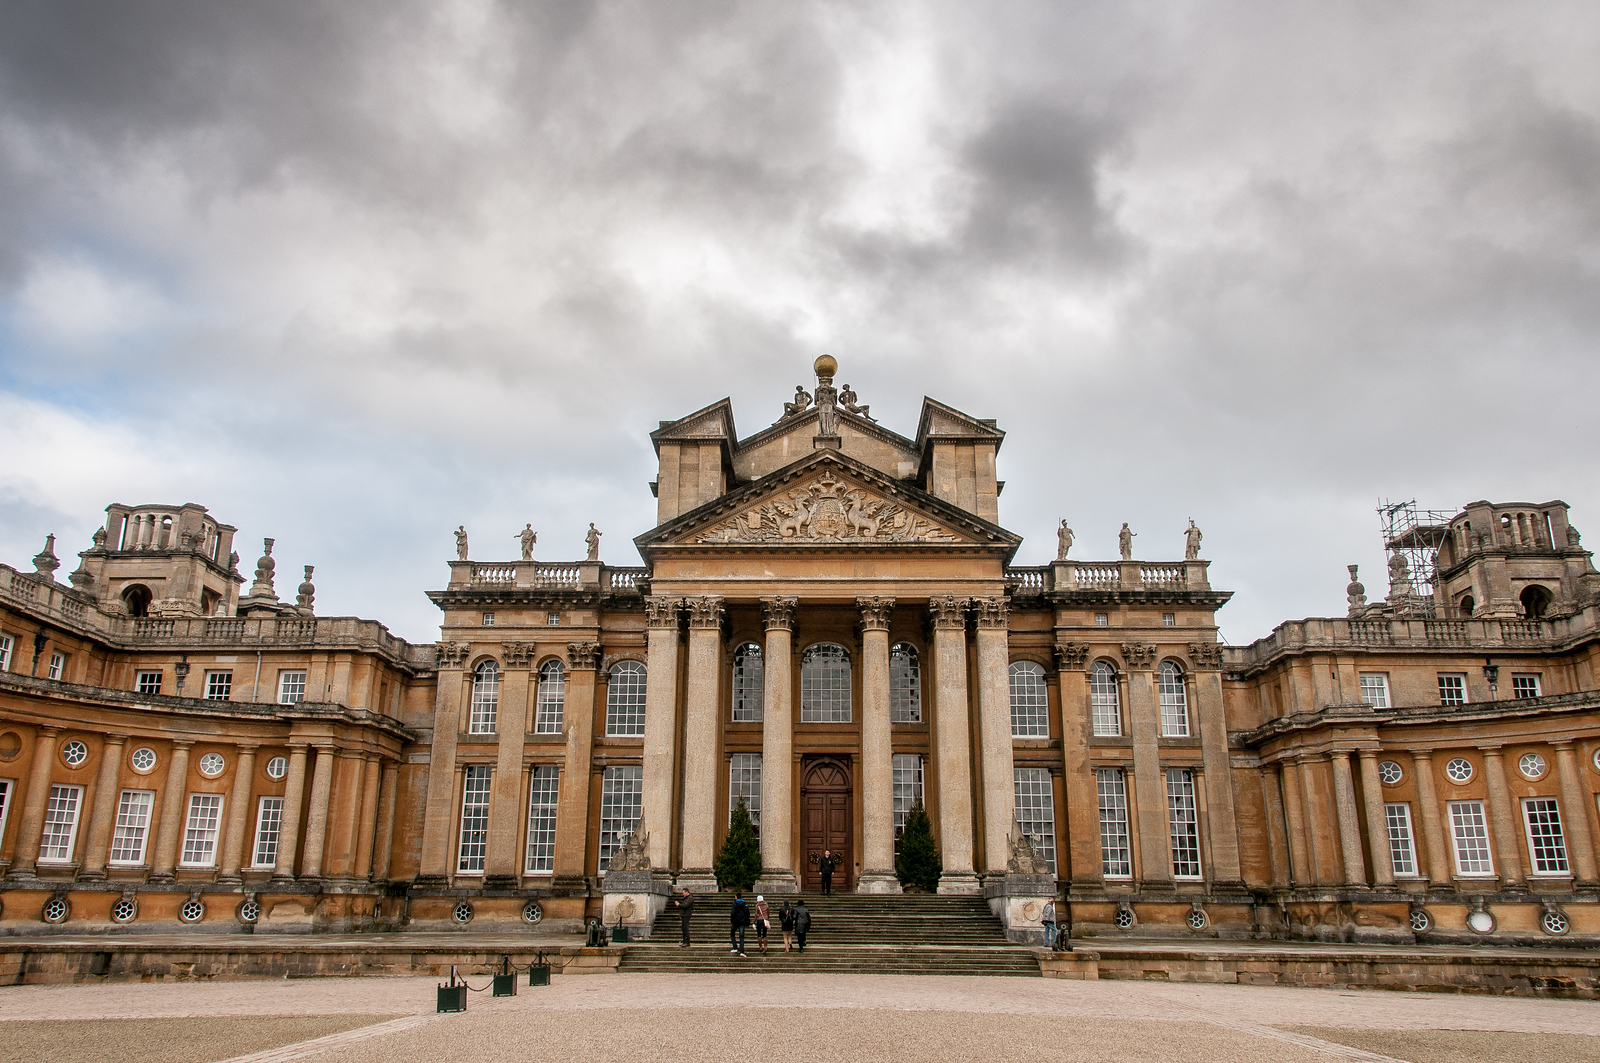 Blenheim Palace UNESCO World Heritage Site